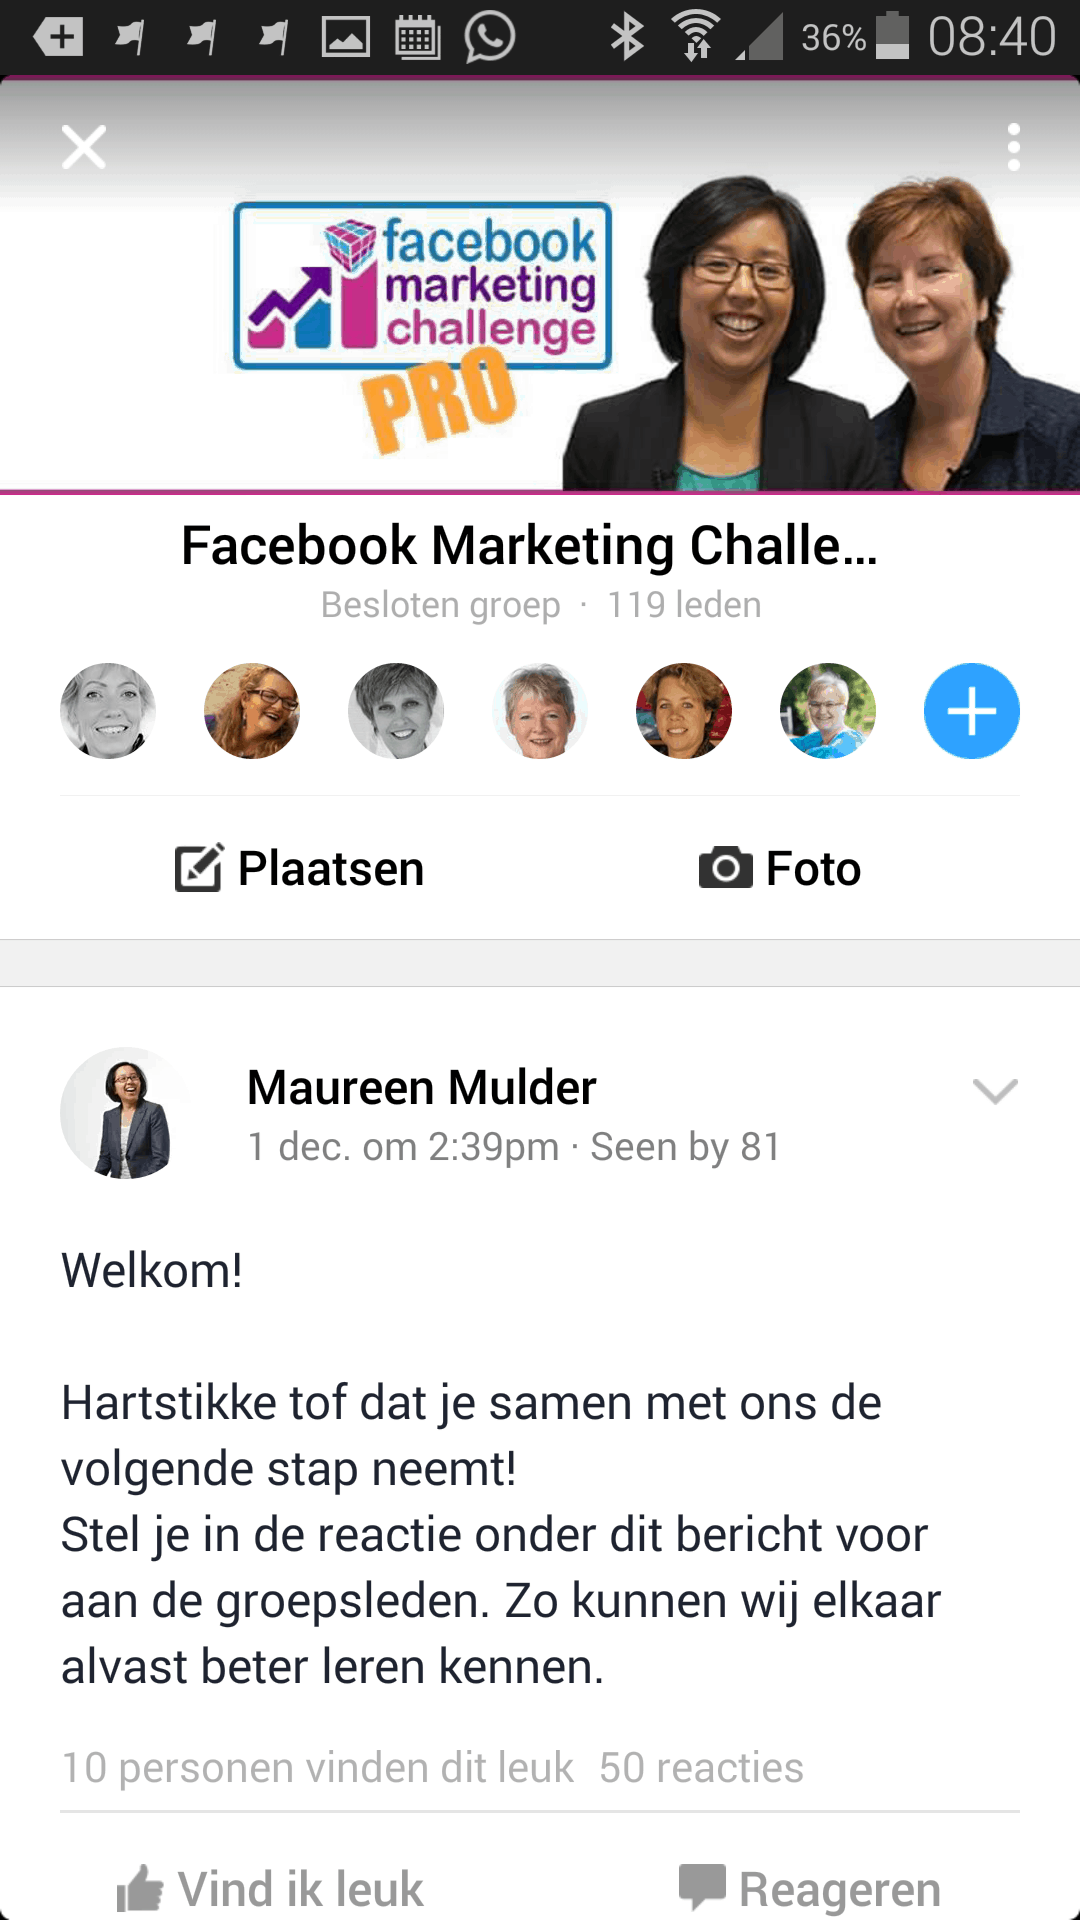 Facebook Marketing Challenge